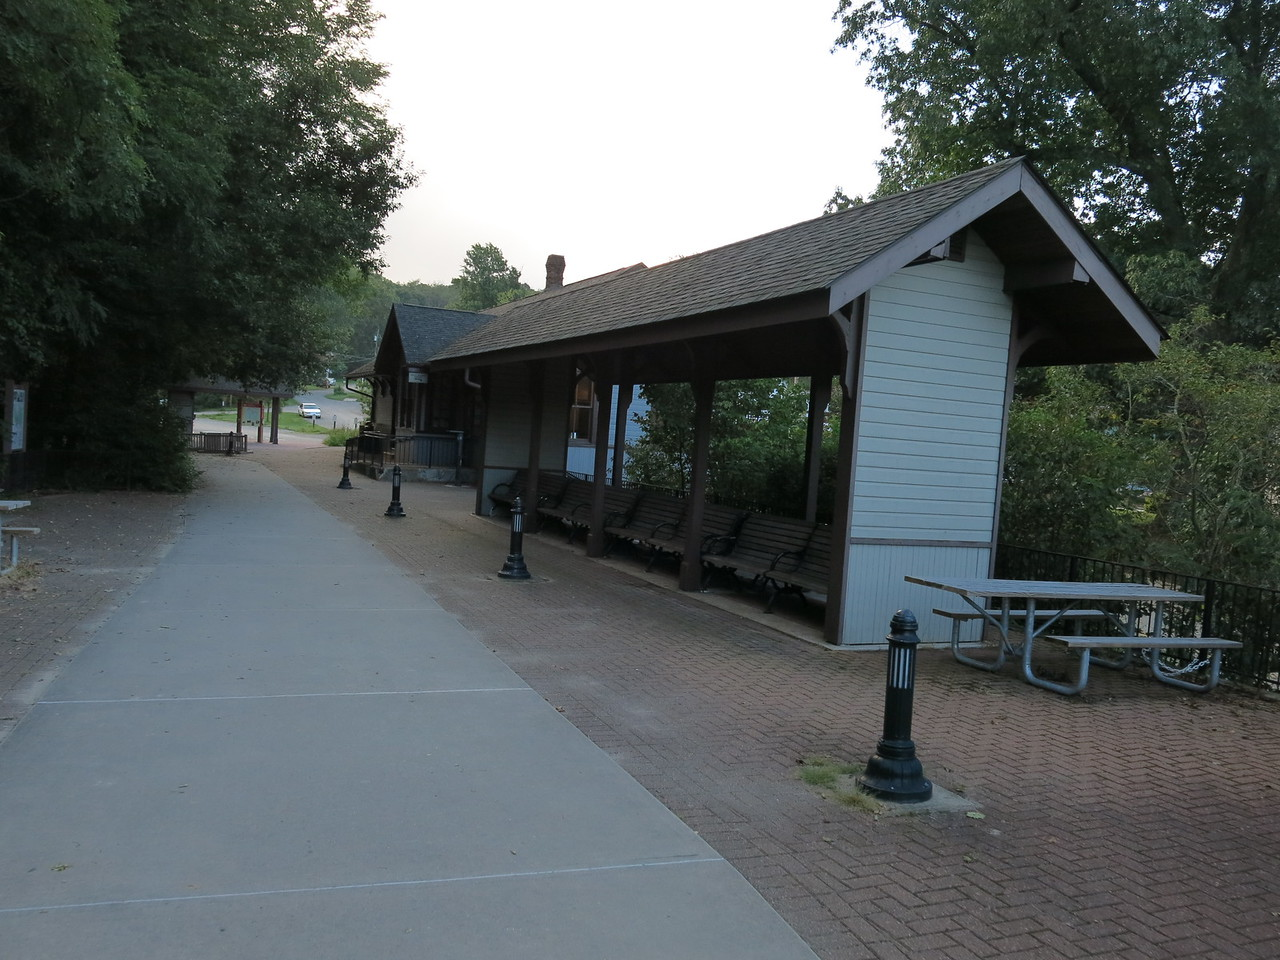 Ohiopyle train station and visitor center